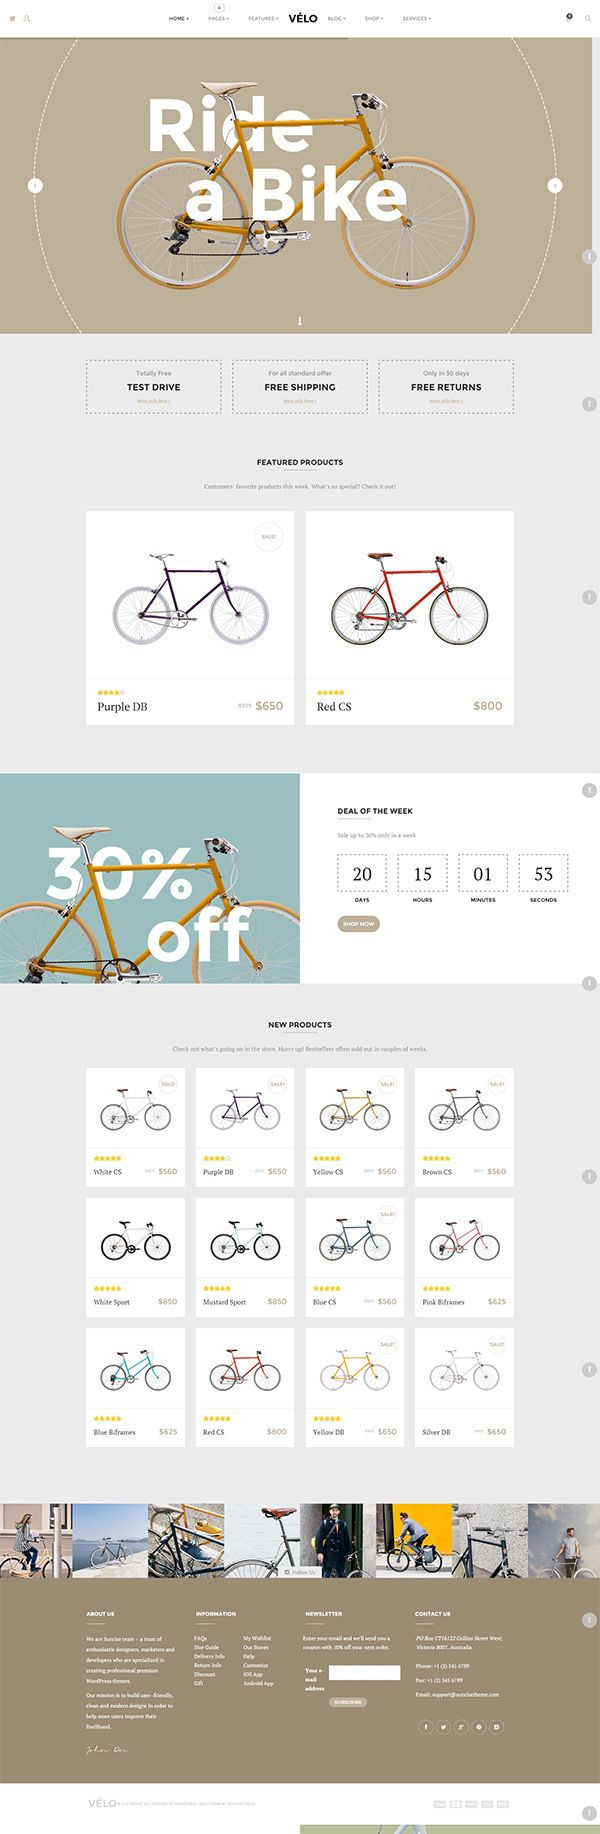 velo-bike-store-responsive-business